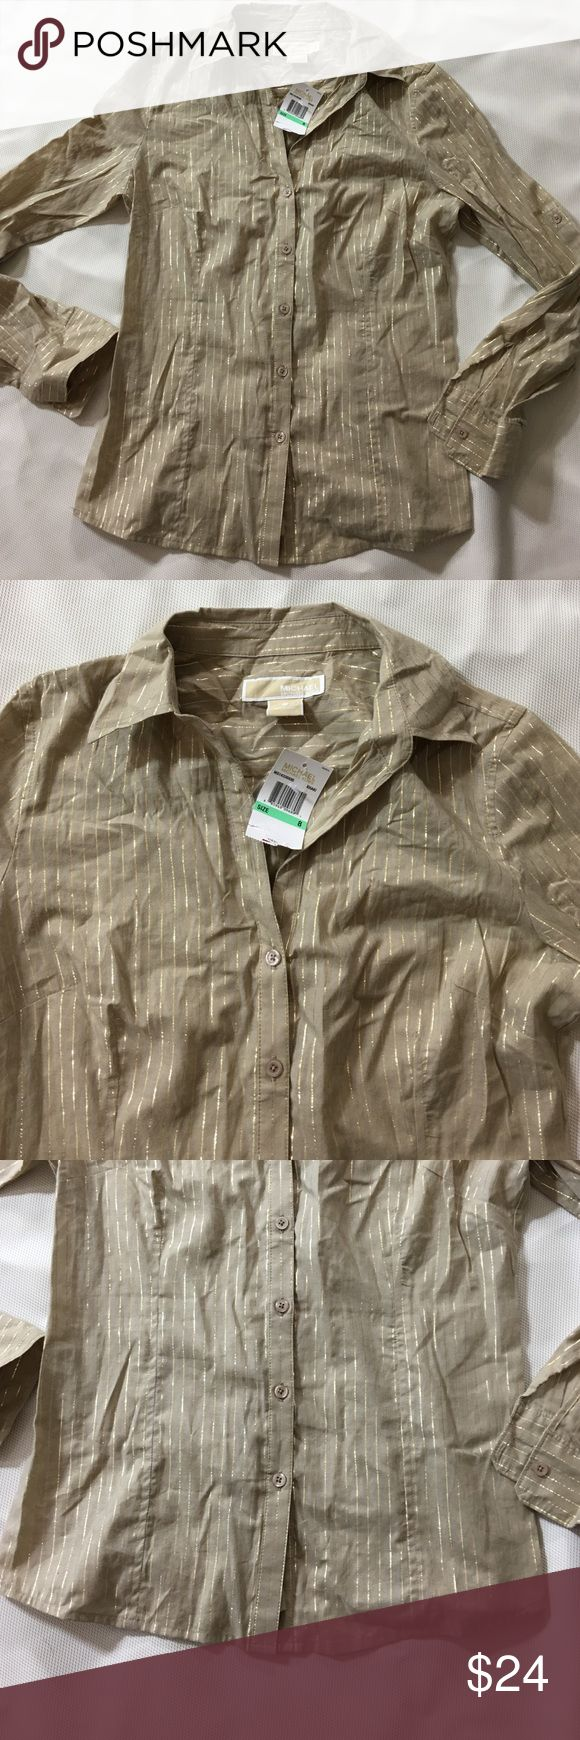 Michael Kors gold long slv button shirt Sz 8 nwt Michael Cors brand-new long sleeve button up shirt size 8 tan or beige color with gold stripes can also be converted into a short sleeve very nice great for the holidays non-smoking home fast delivery at an excellent price get it today MICHAEL Michael Kors Tops Button Down Shirts